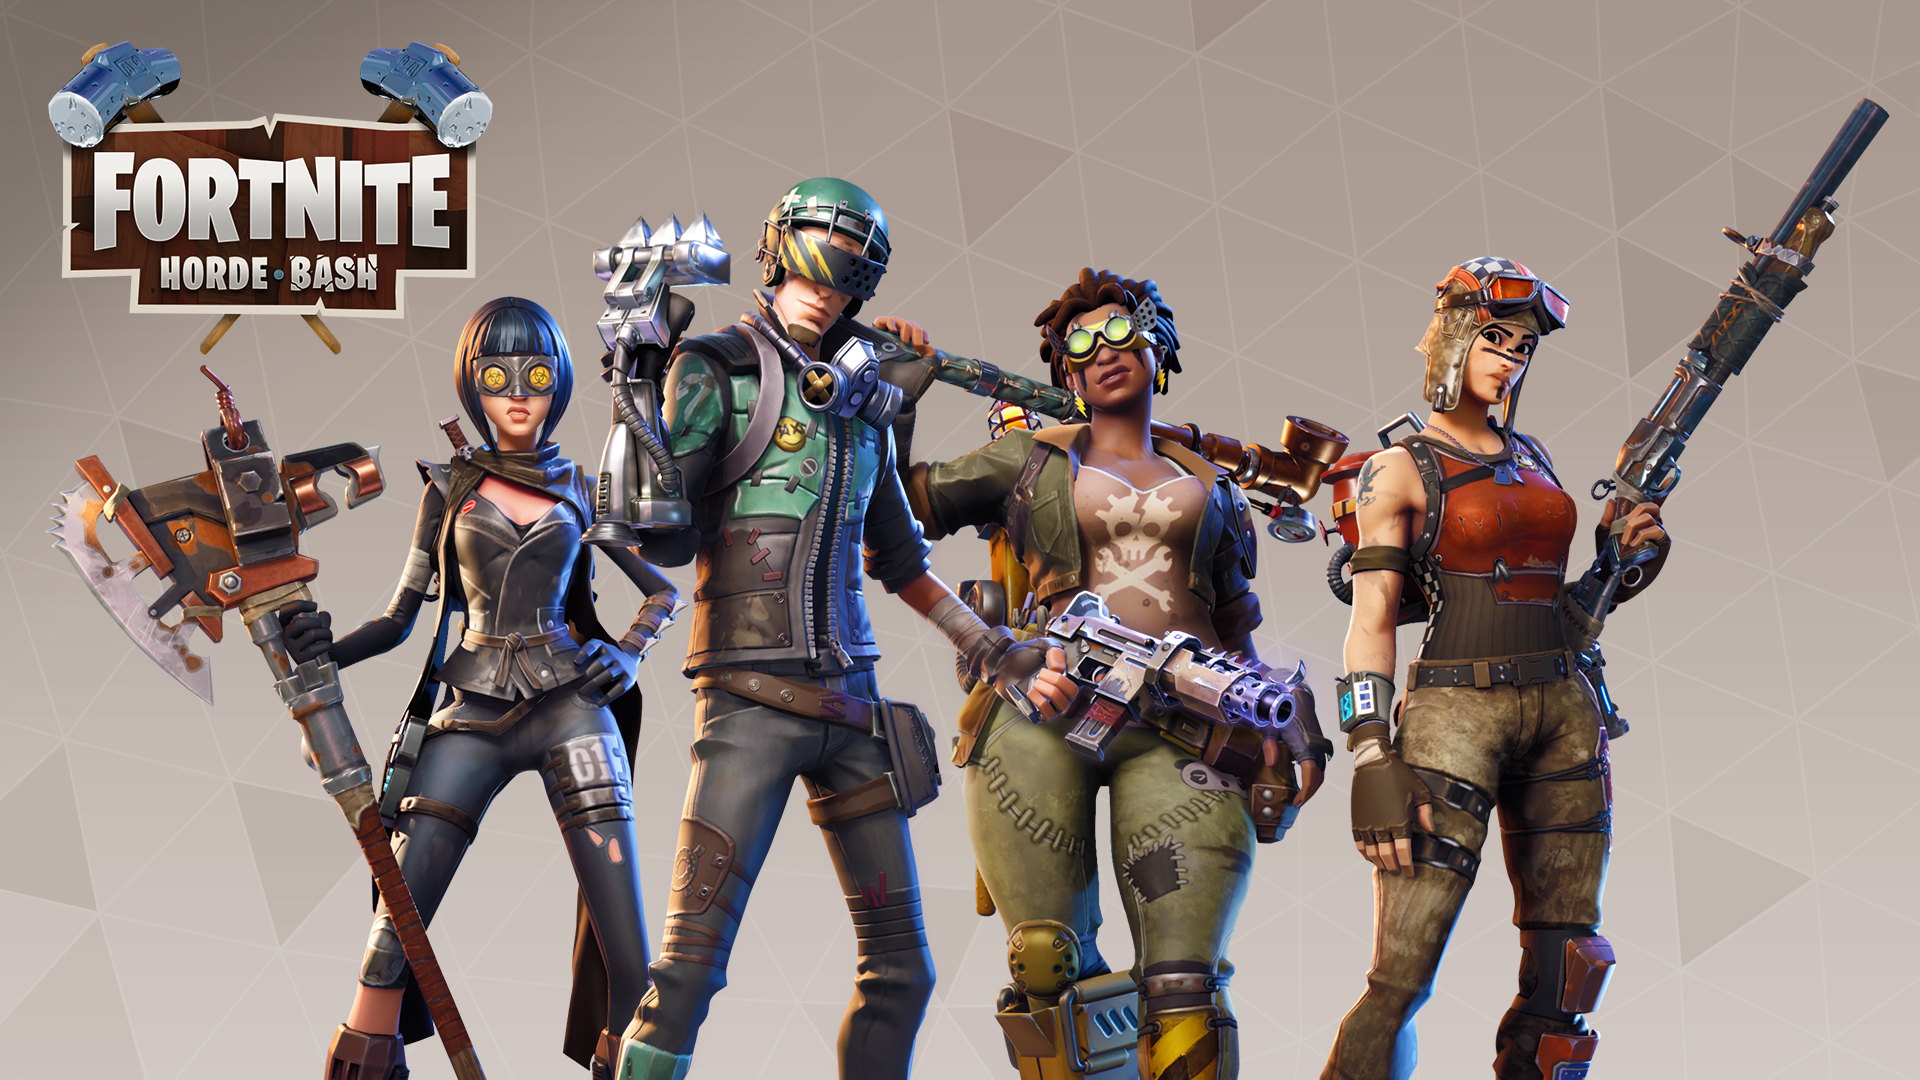 Fortnite%2Fblog%2Fea-1-7-patch-notes%2FENG-HB-Heroes-1920x1080-8c49df06854a337950e558639bbd0becd271ac20